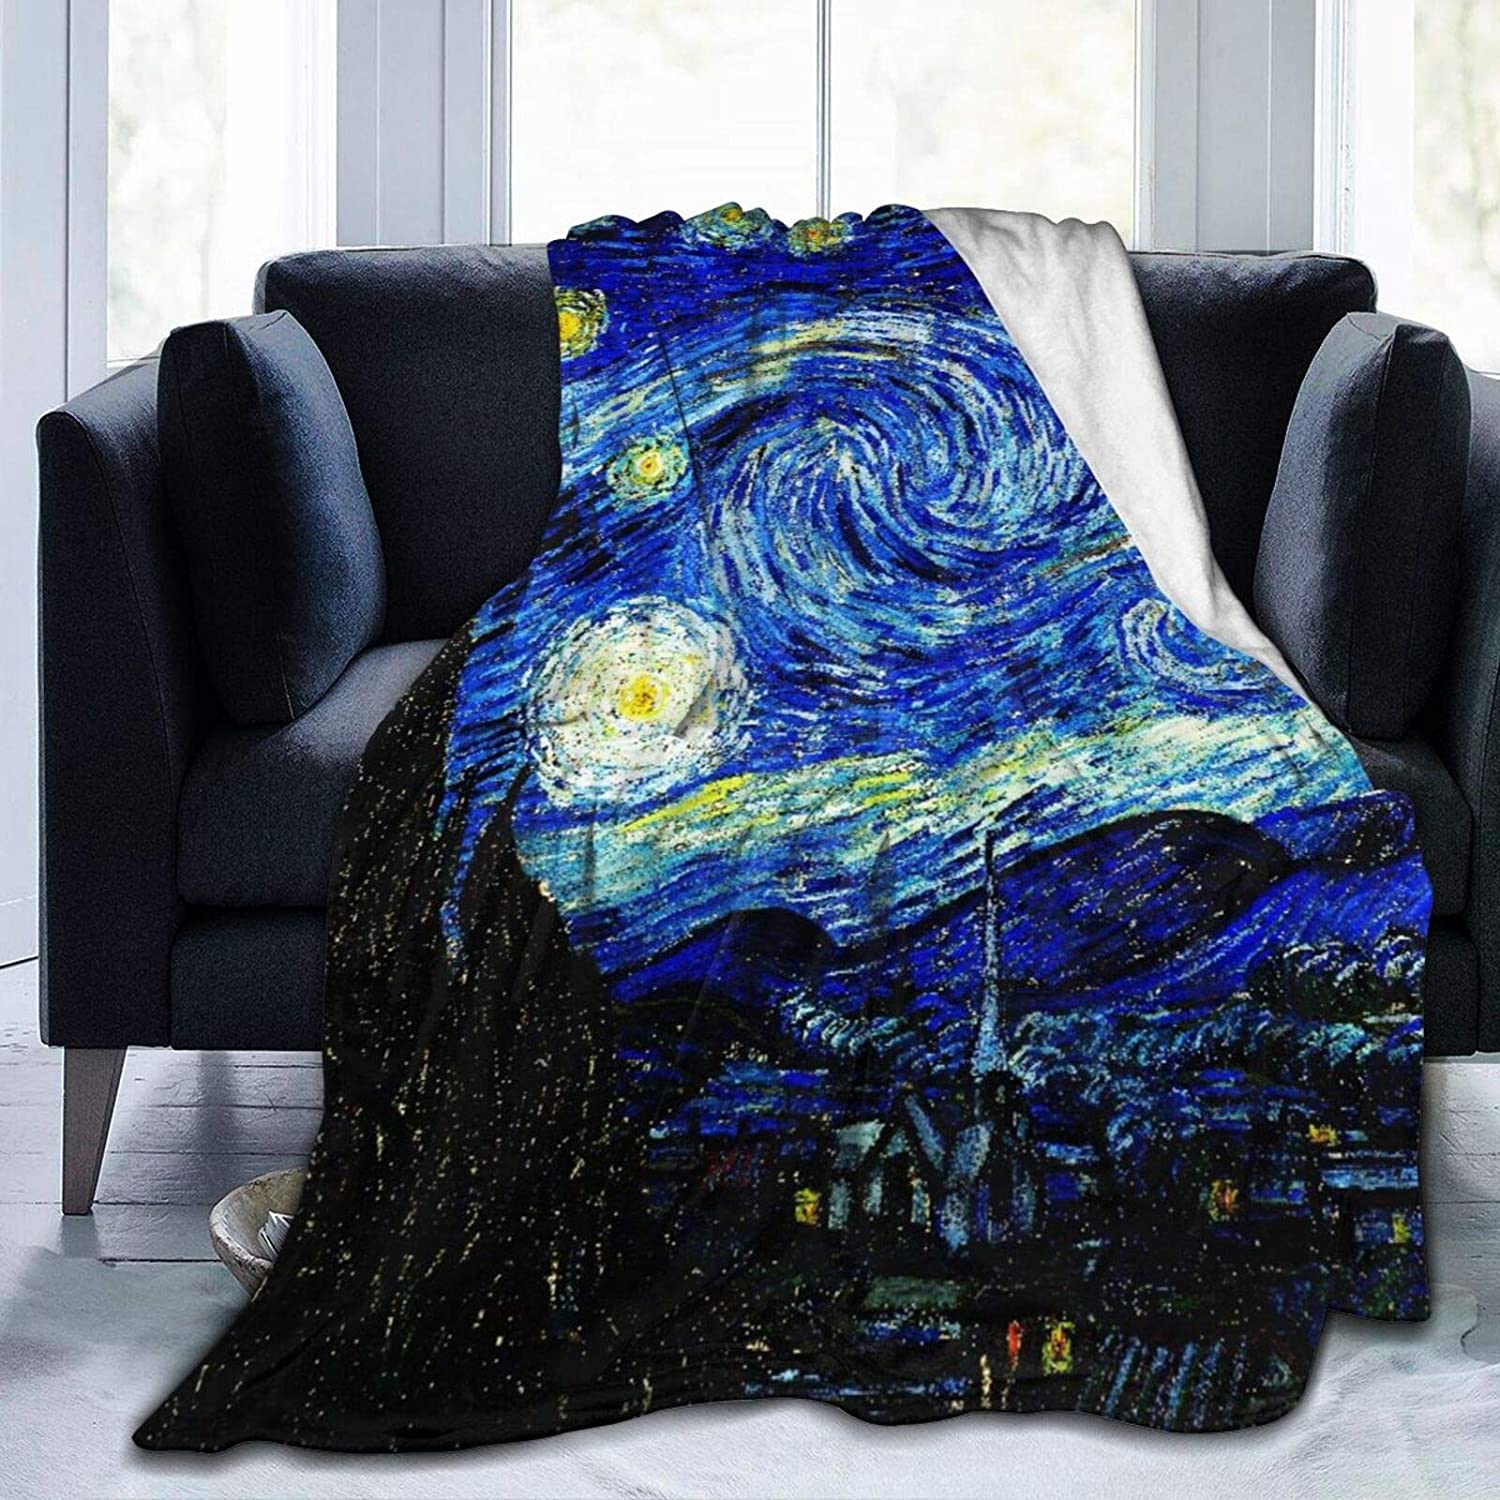 """Janrely Ultra-Soft Micro Fleece Blanket,Starry Night,Home Decor Warm Throw Blanket for Couch Bed,60""""X 50"""""""